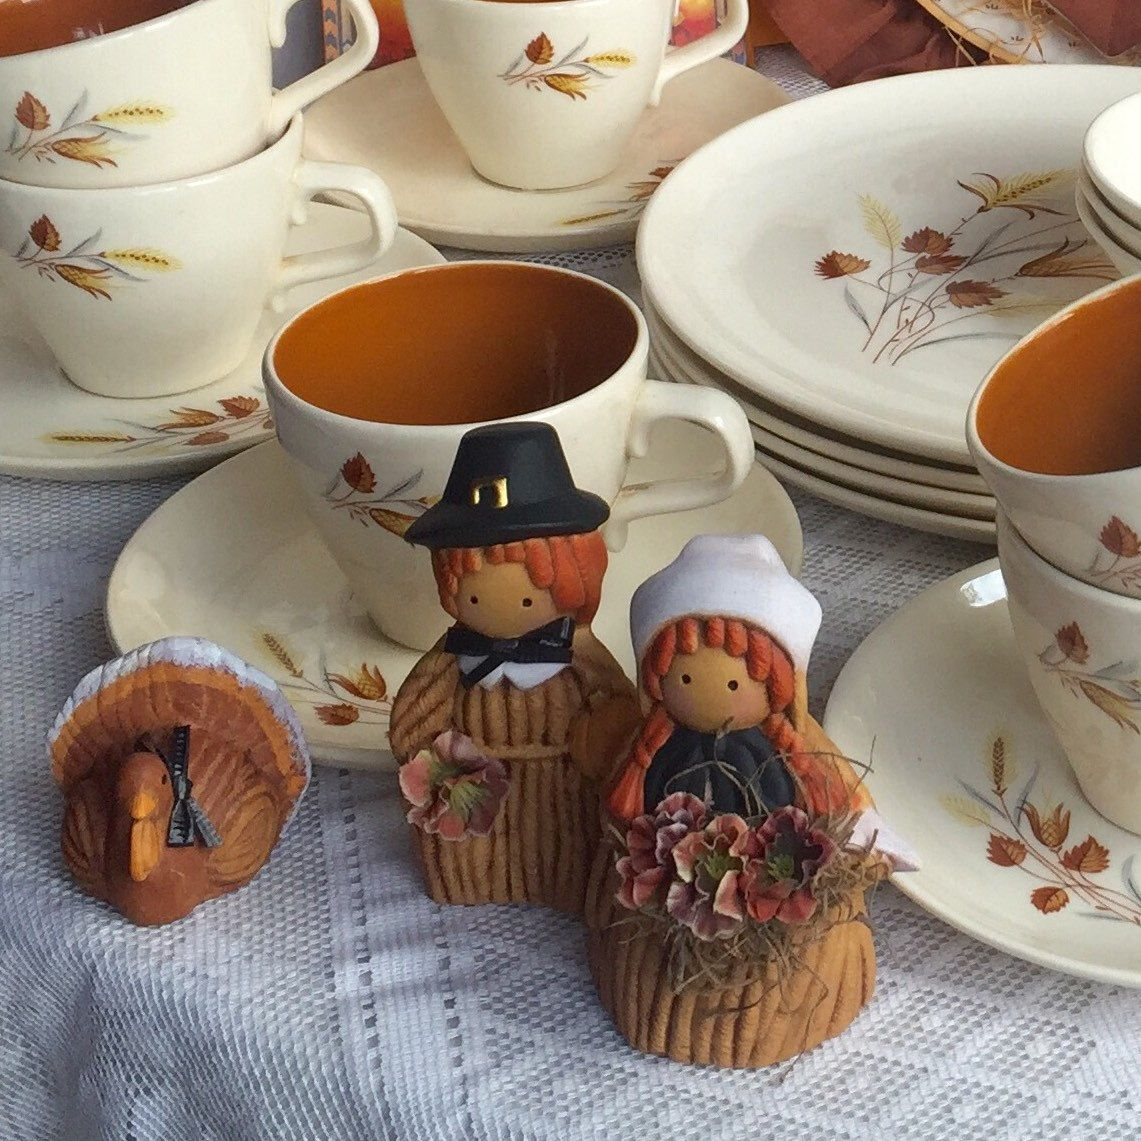 From figurines to china plates, Vinategpoetic has everything vintage for Thanksgiving!